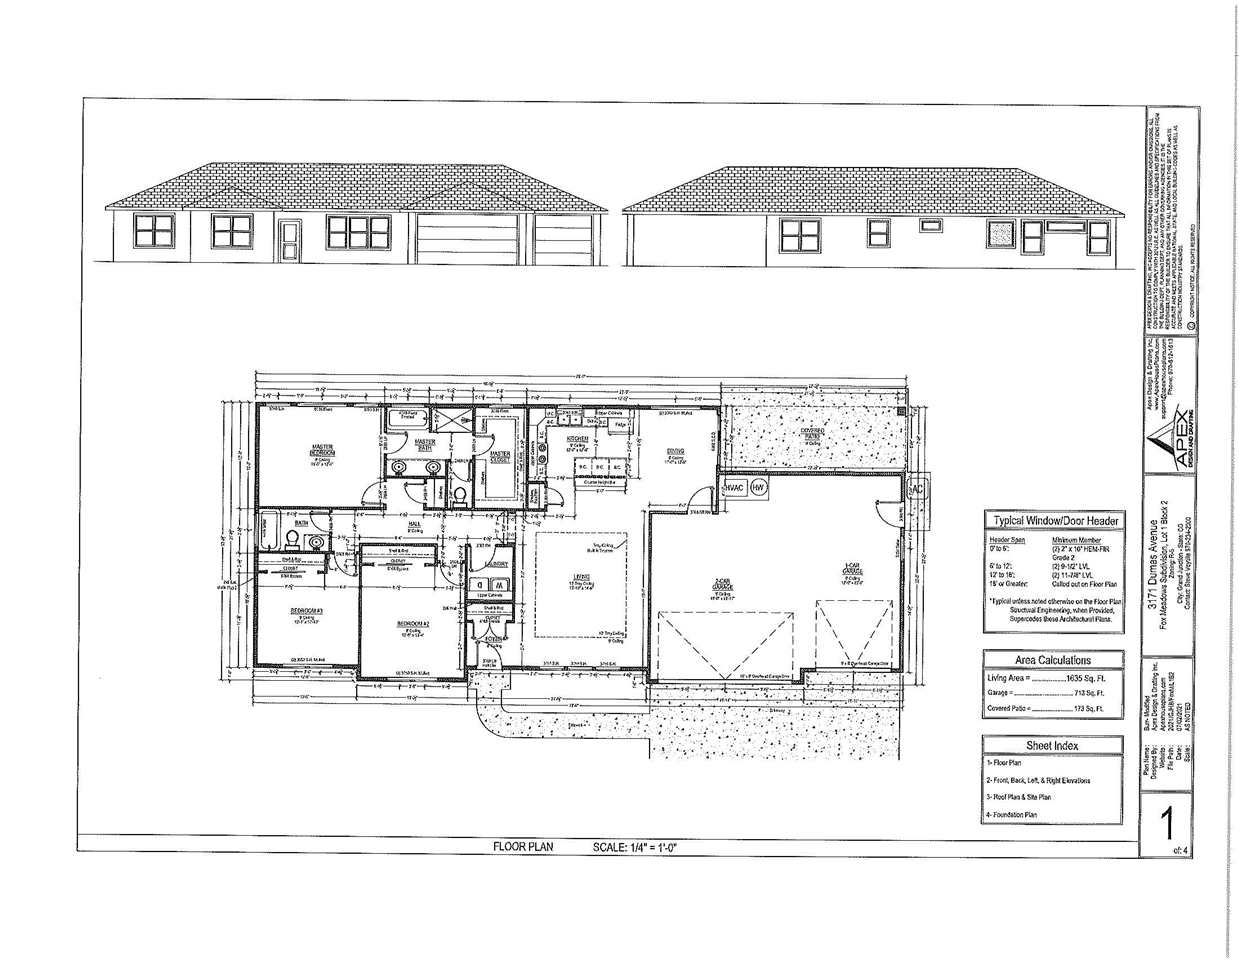 Construction is just beginning on this home which will feature stucco exterior with stone accents, 30 year architectural shingles,wood floors in living room and kitchen, tile floors in bathrooms and laundry, granite counter tops in kitchen and bathrooms,stainless steel appliances including refrigerator, walk-in closet in master bedroom, forced air heating and refrigerated air. Seller is a Colorado licensed Real Estate broker.